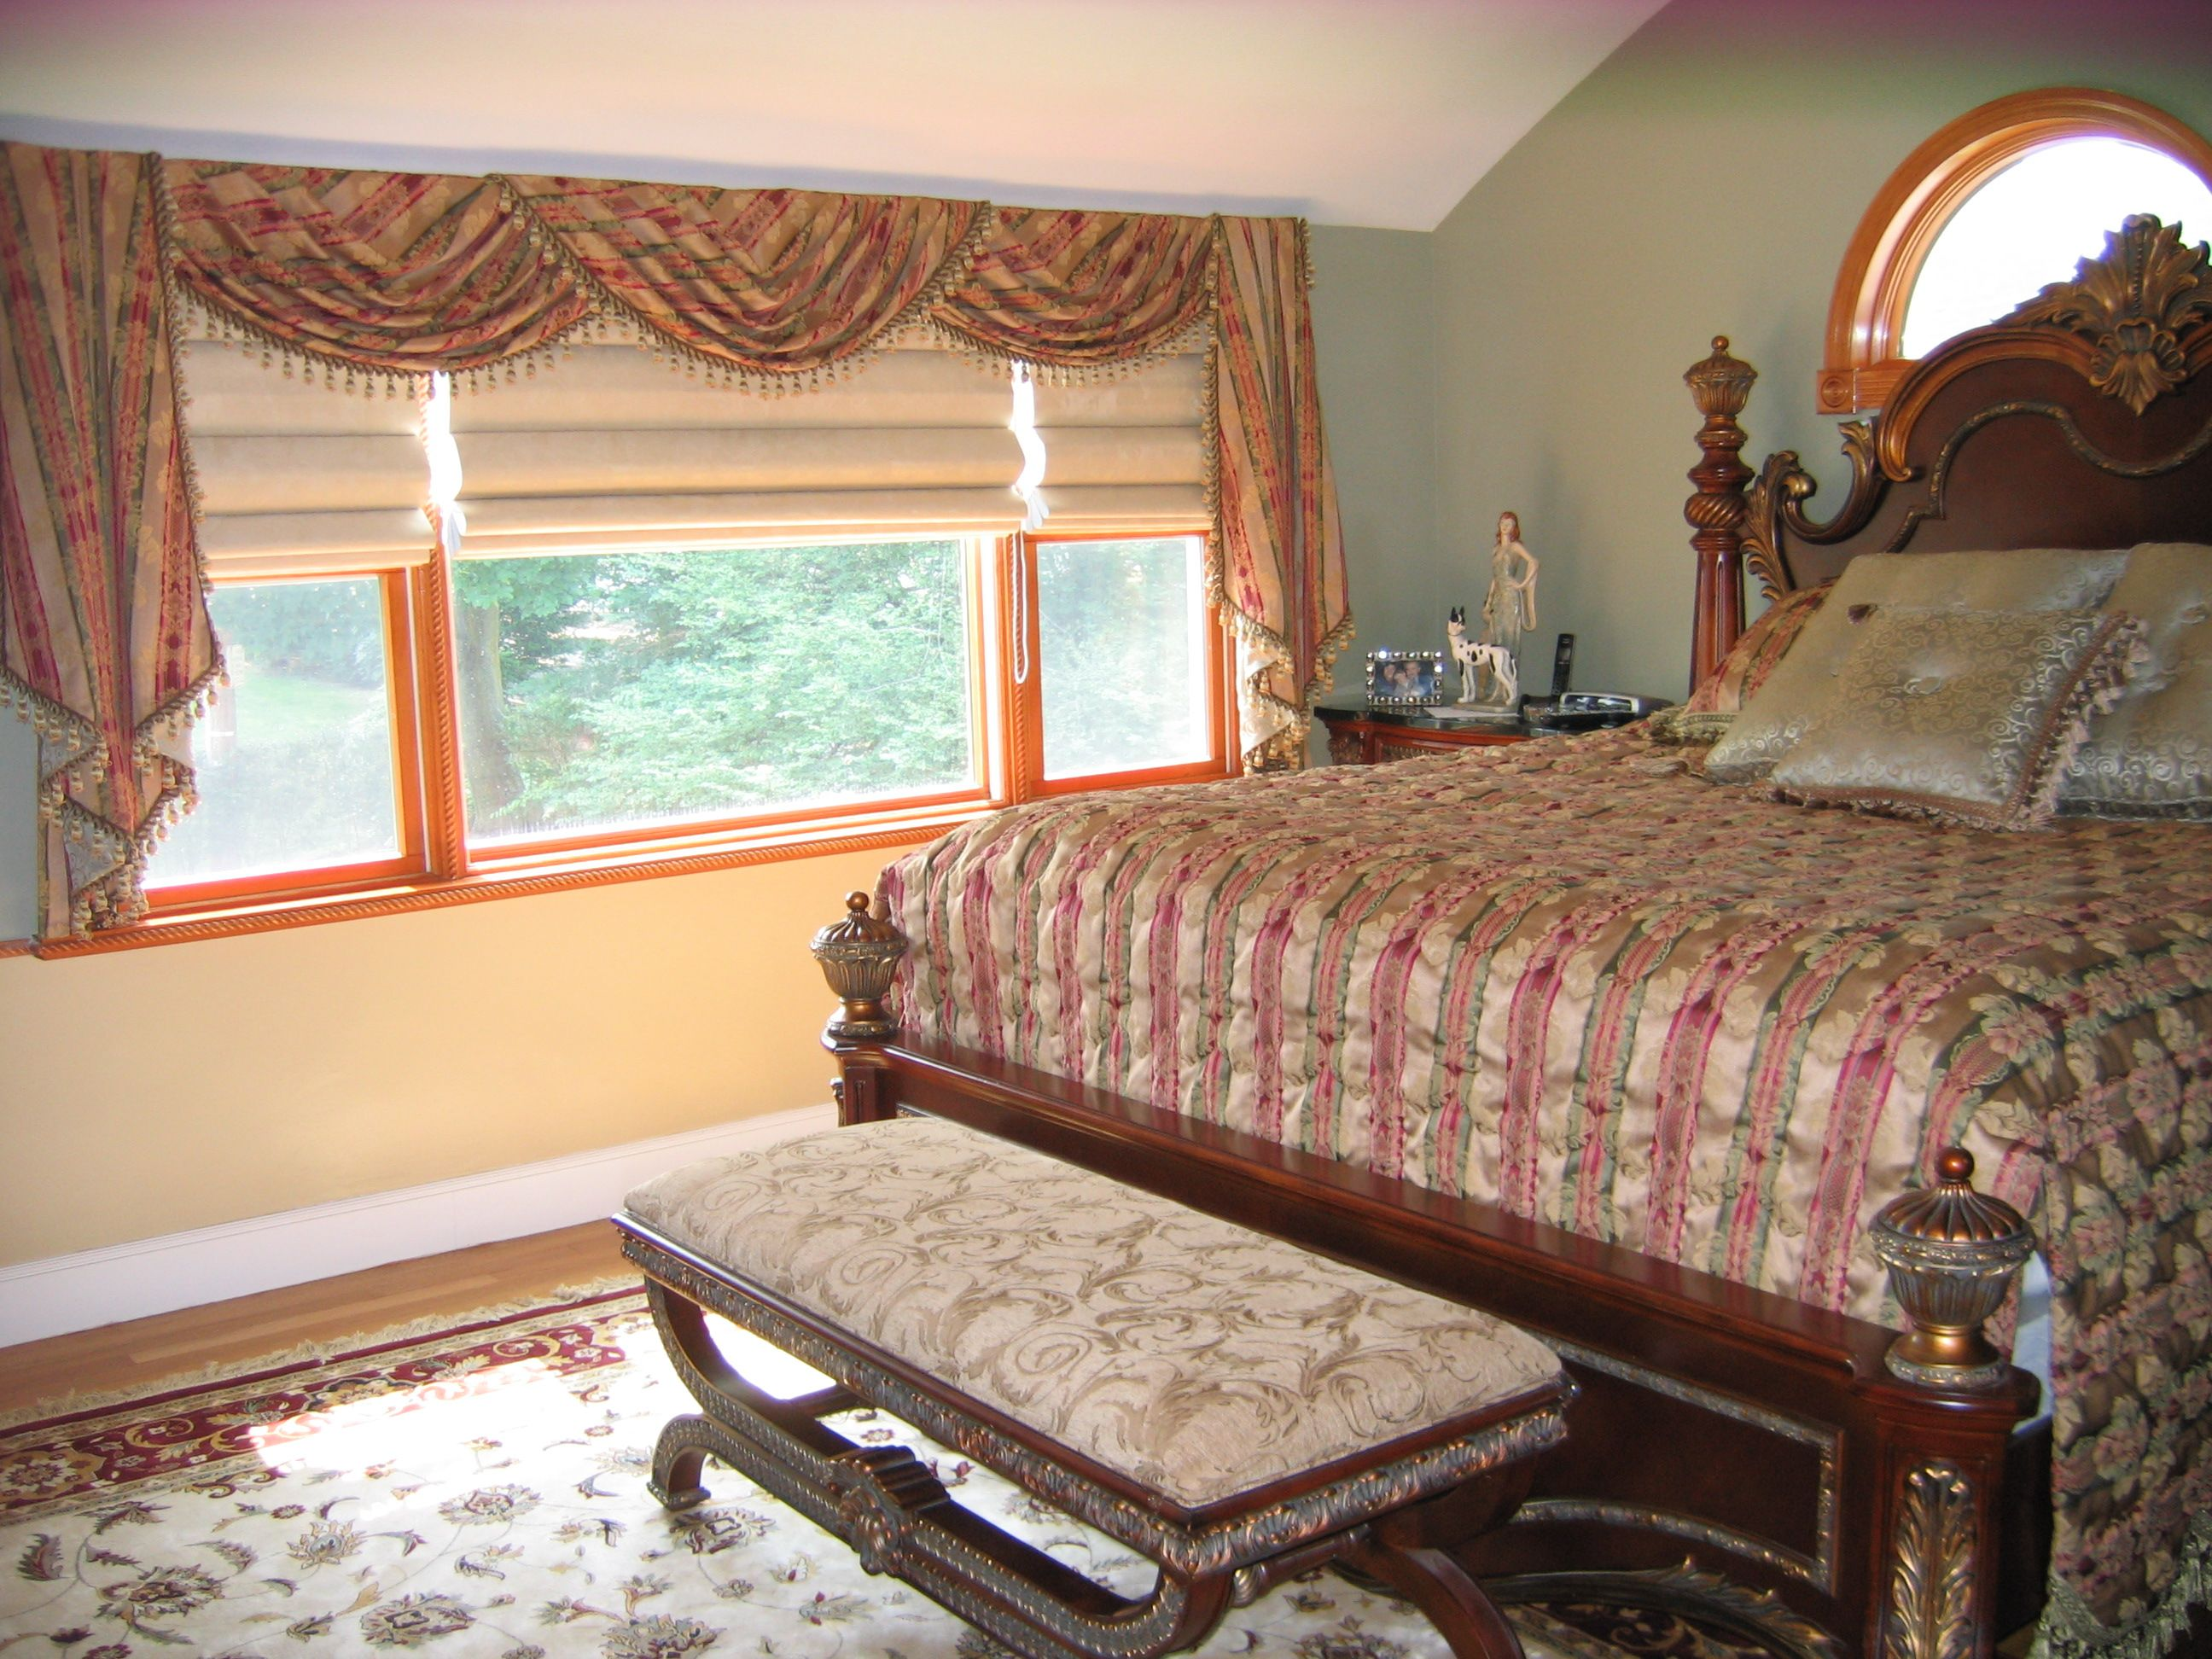 Bed covering window  traditional swags with double cascades over roman shades custom